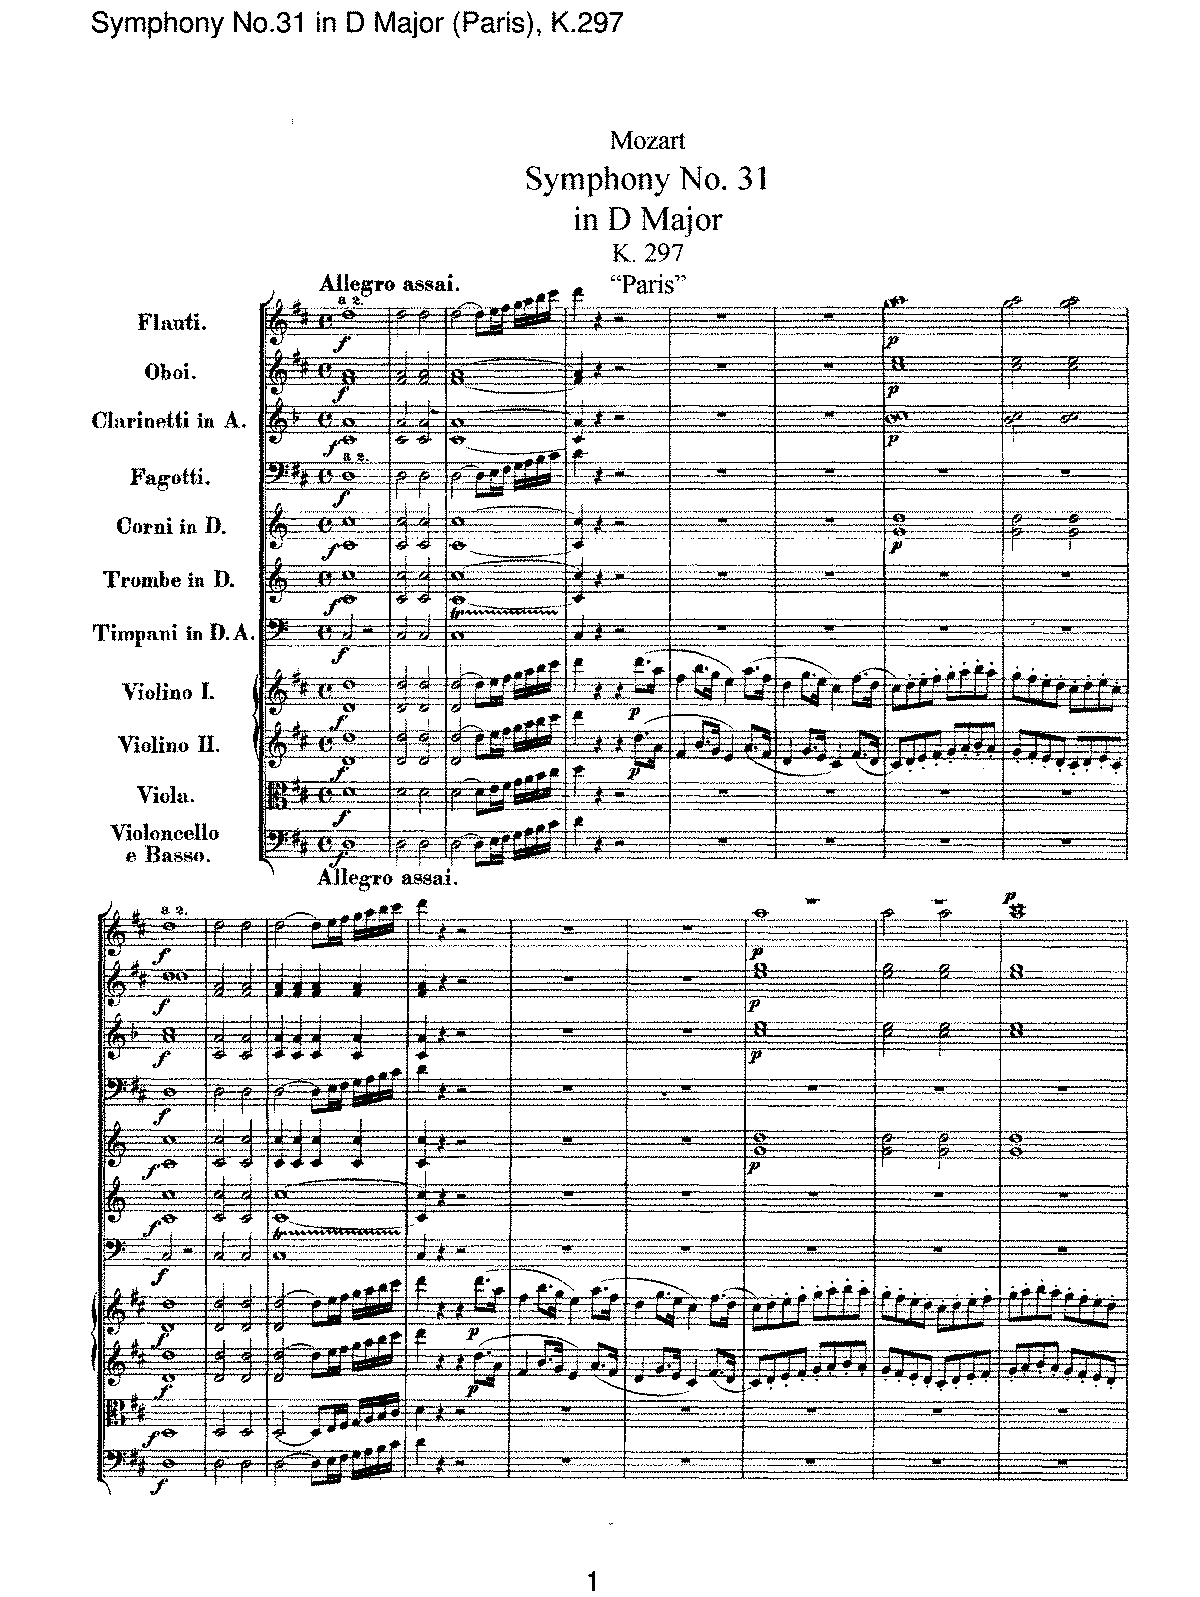 Mozart - Symphony No 31 in D Major (Paris), K.297.pdf